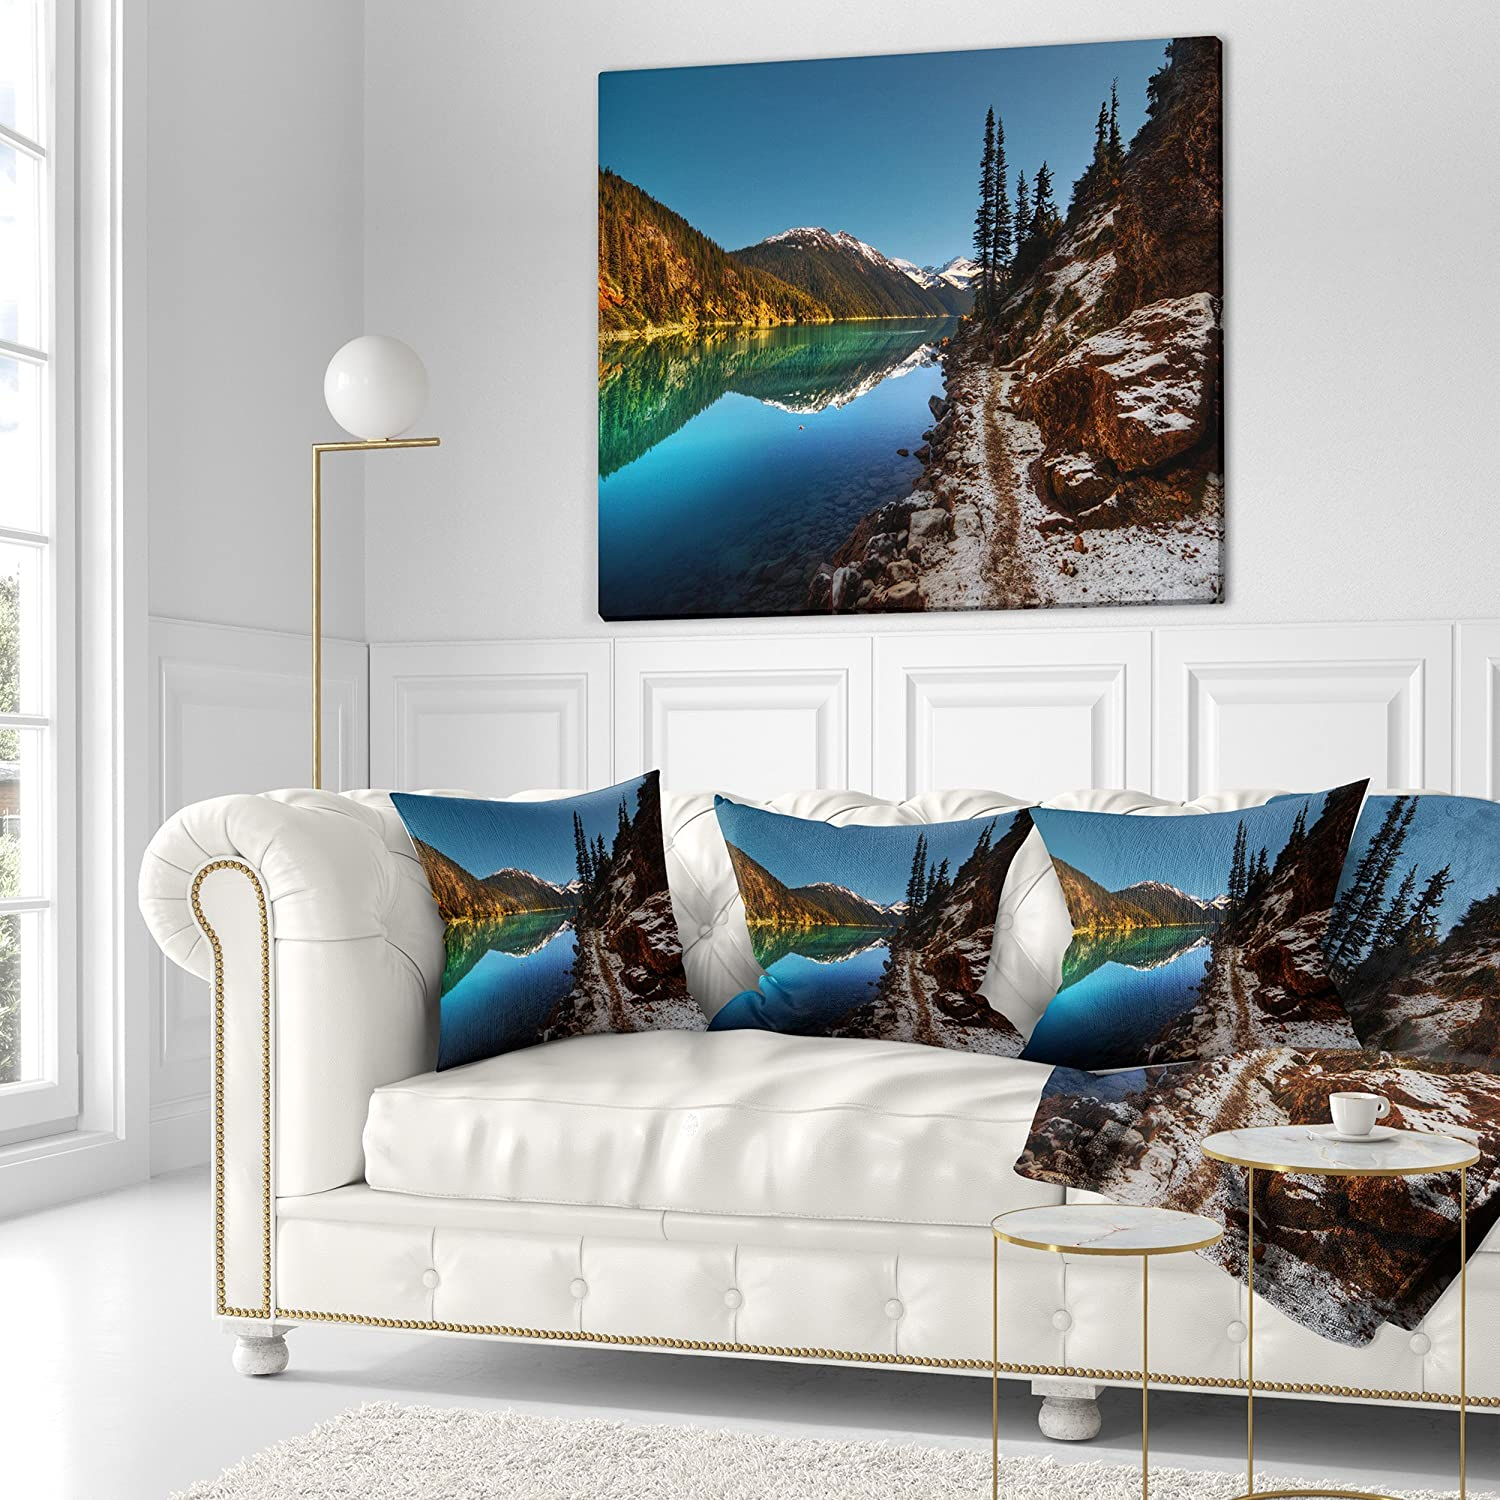 Sofa Designart Cu14410 16 16 Blue Clear Lake With Mountains Landscape Printed Cushion Cover For Living